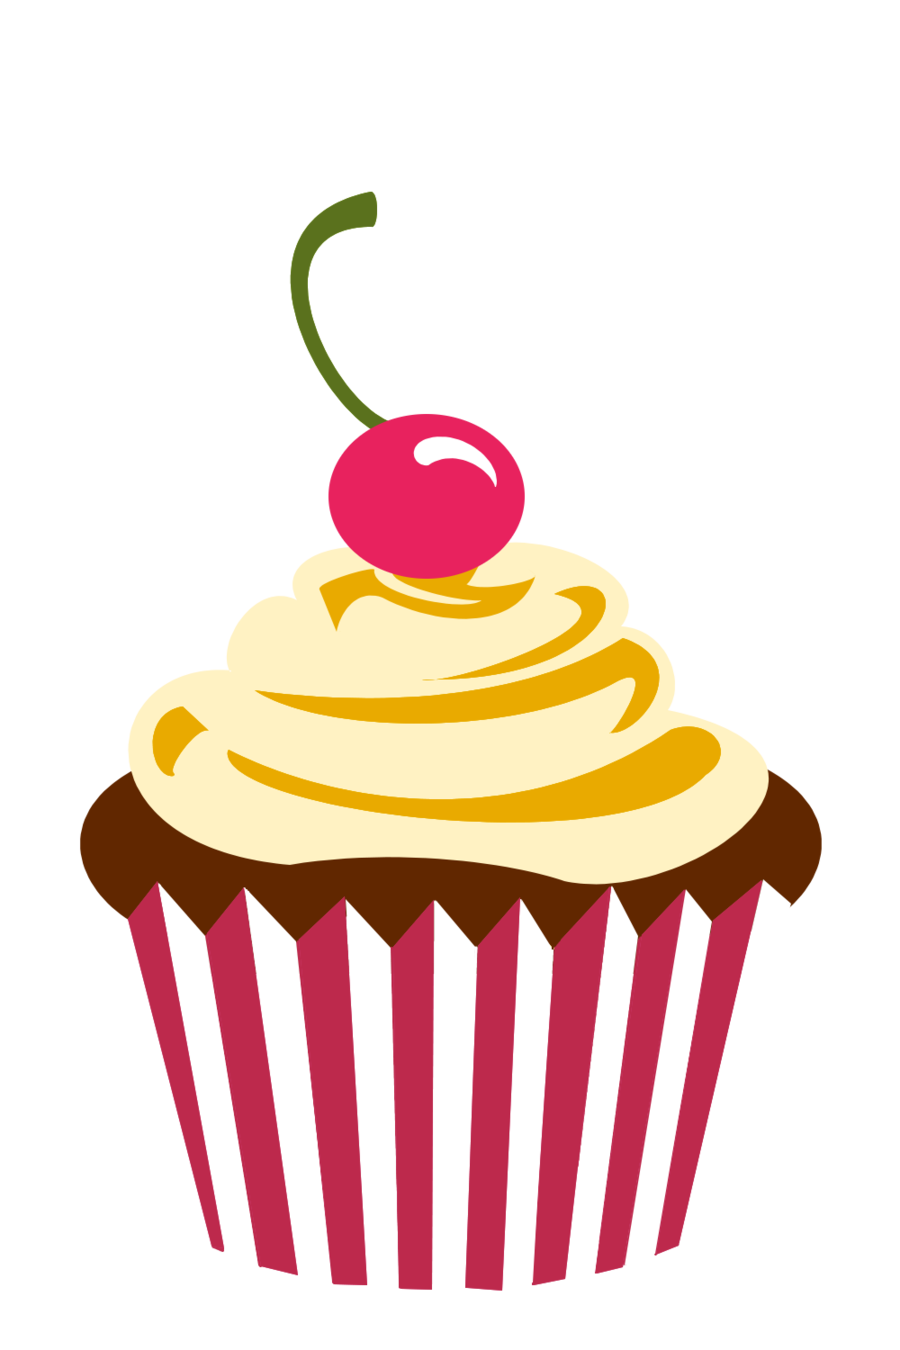 Cupcake Logo Png Cherry chocolate cupcake by Party ...